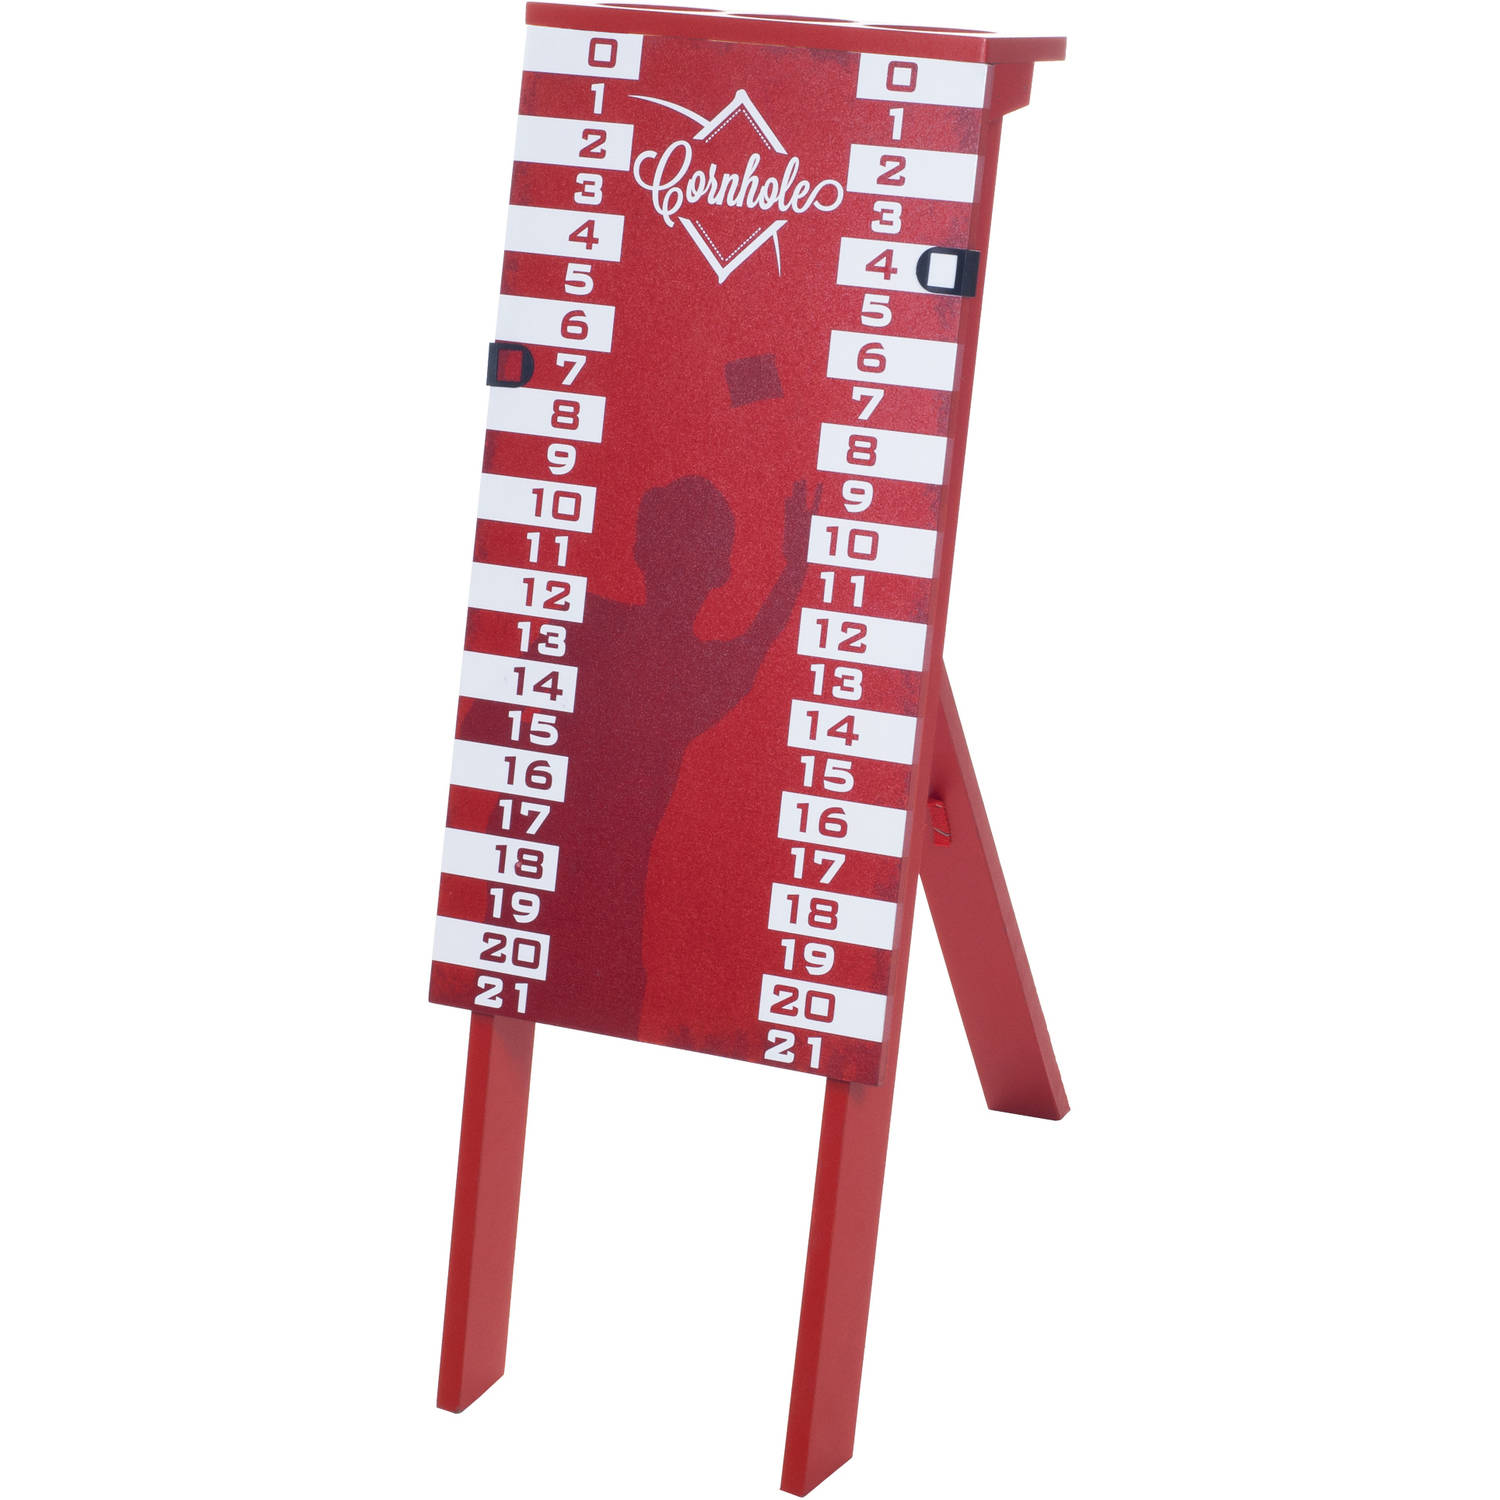 Cornhole Scoreboard and Cup Holder, Red